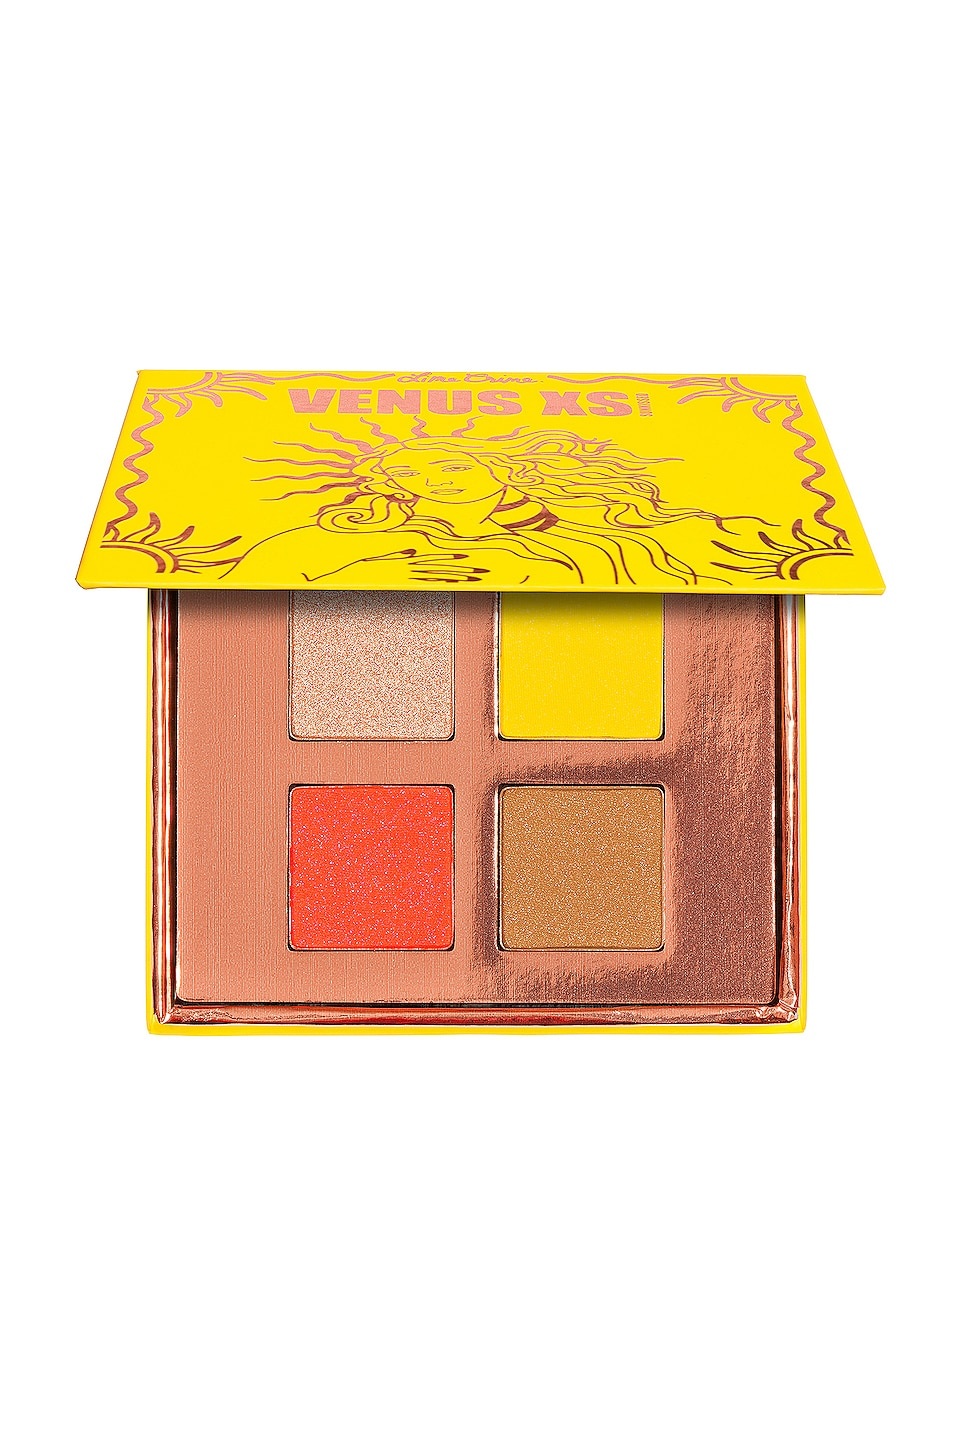 Lime Crime XS Sunkissed Palette